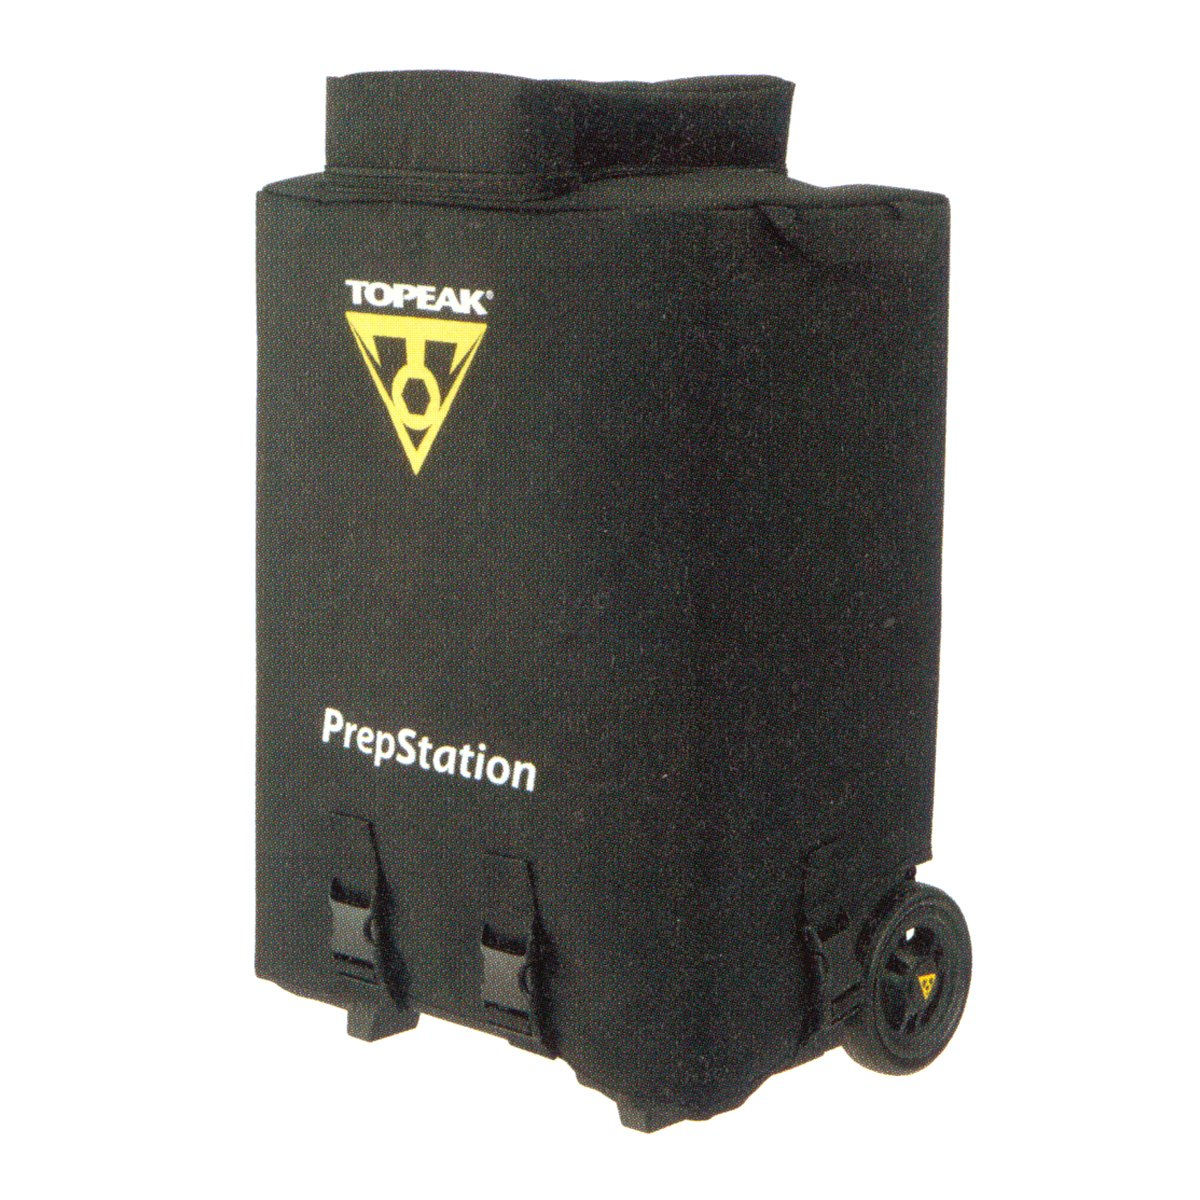 Topeak Prepstation Protection pour Prepstation Outil by TOPEAK (Image #1)